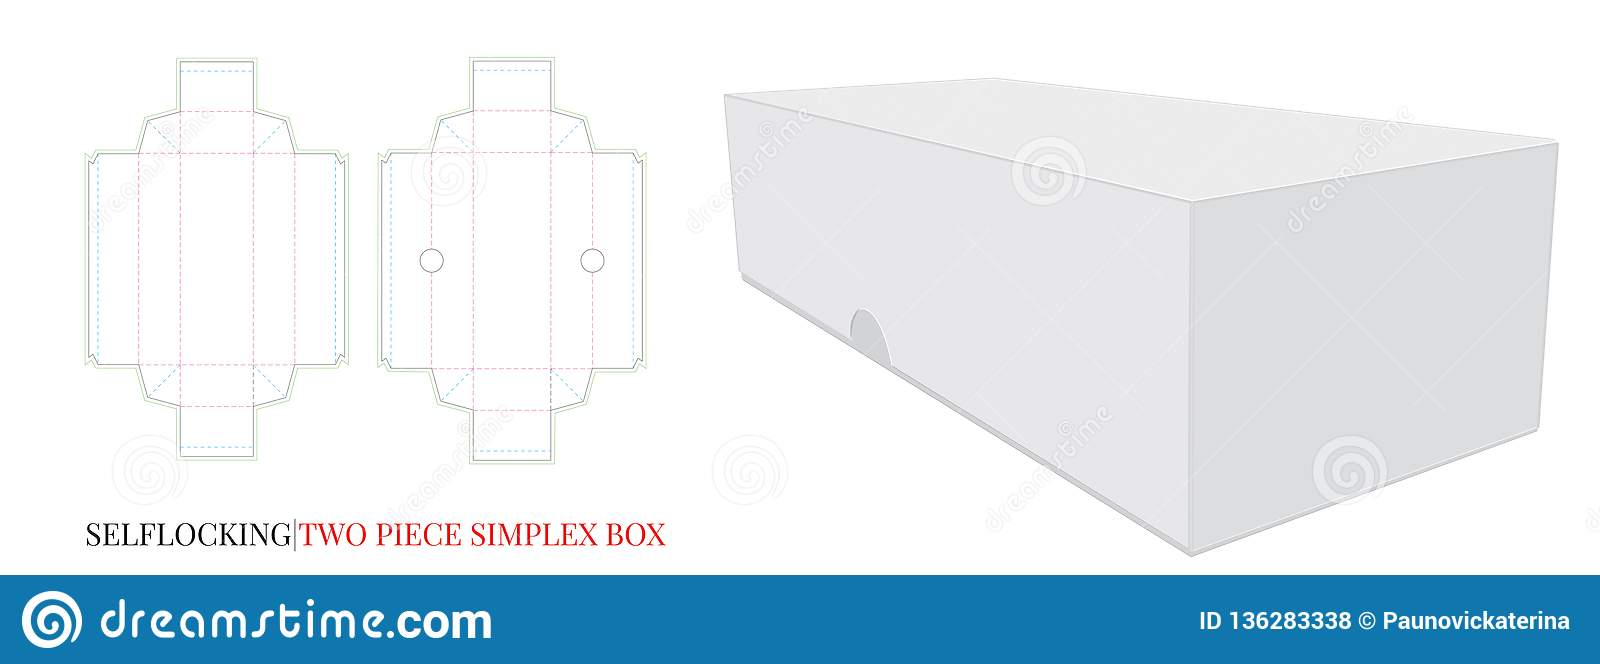 Simplex Box Template, vector with die cut / laser cut layers. Self Lock, two pieces, without glue. Simplex Box mock up